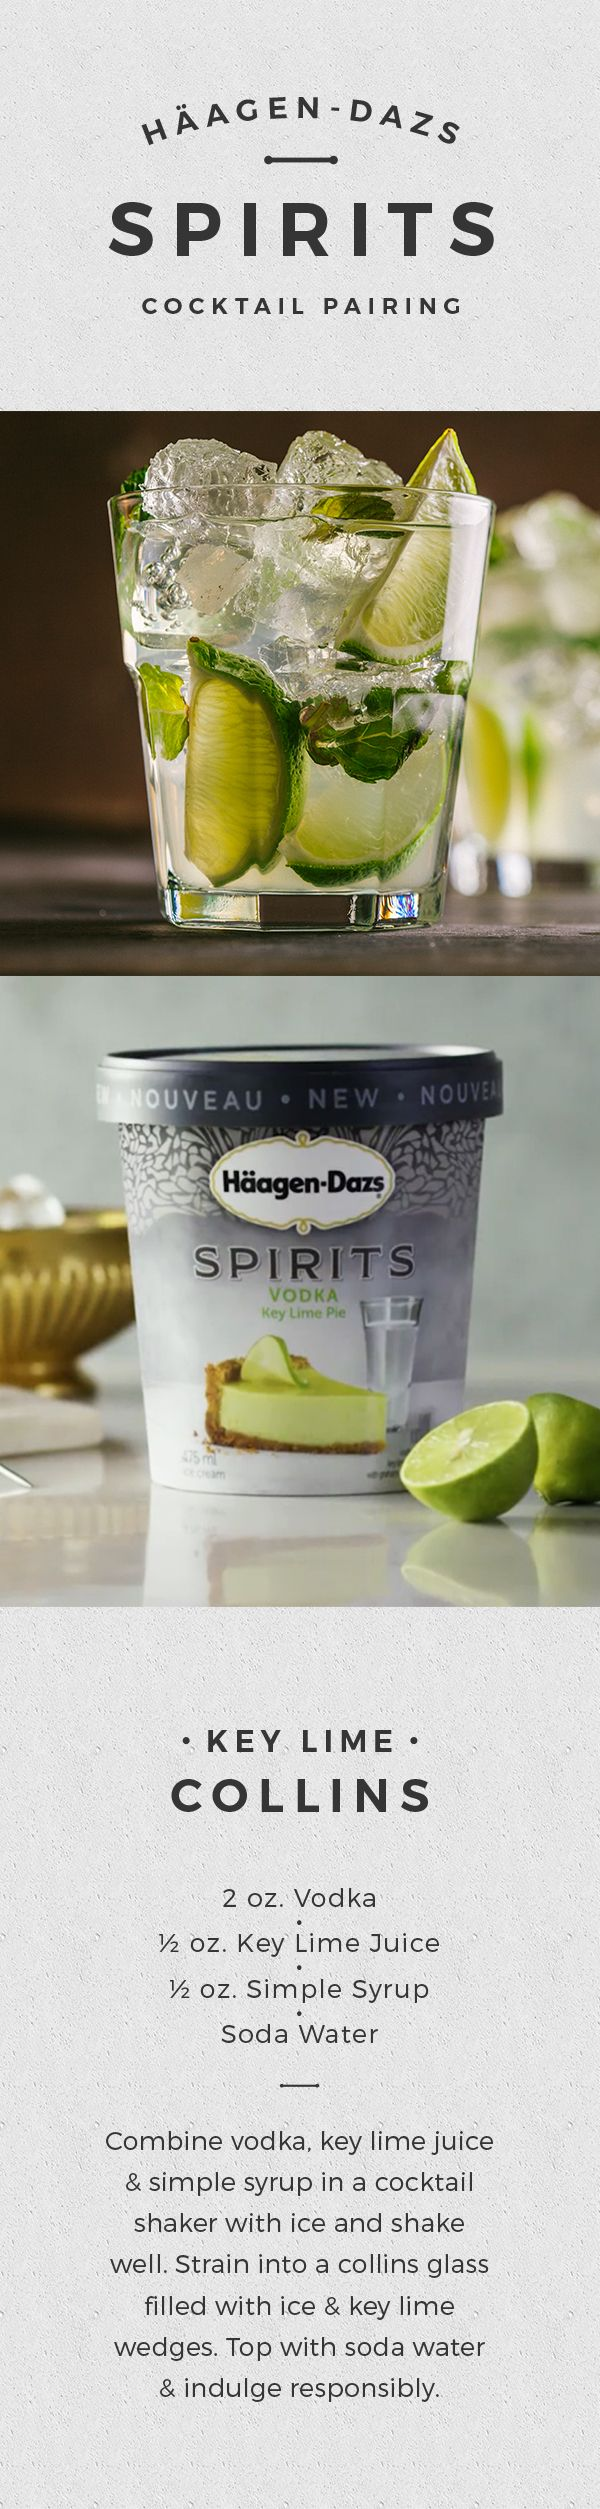 Treat yourself to a slice of summer with refreshing key lime ice cream infused with premium vodka and a luxurious graham cracker ripple. NEW Häagen-Dazs® SPIRITS are in stores now.